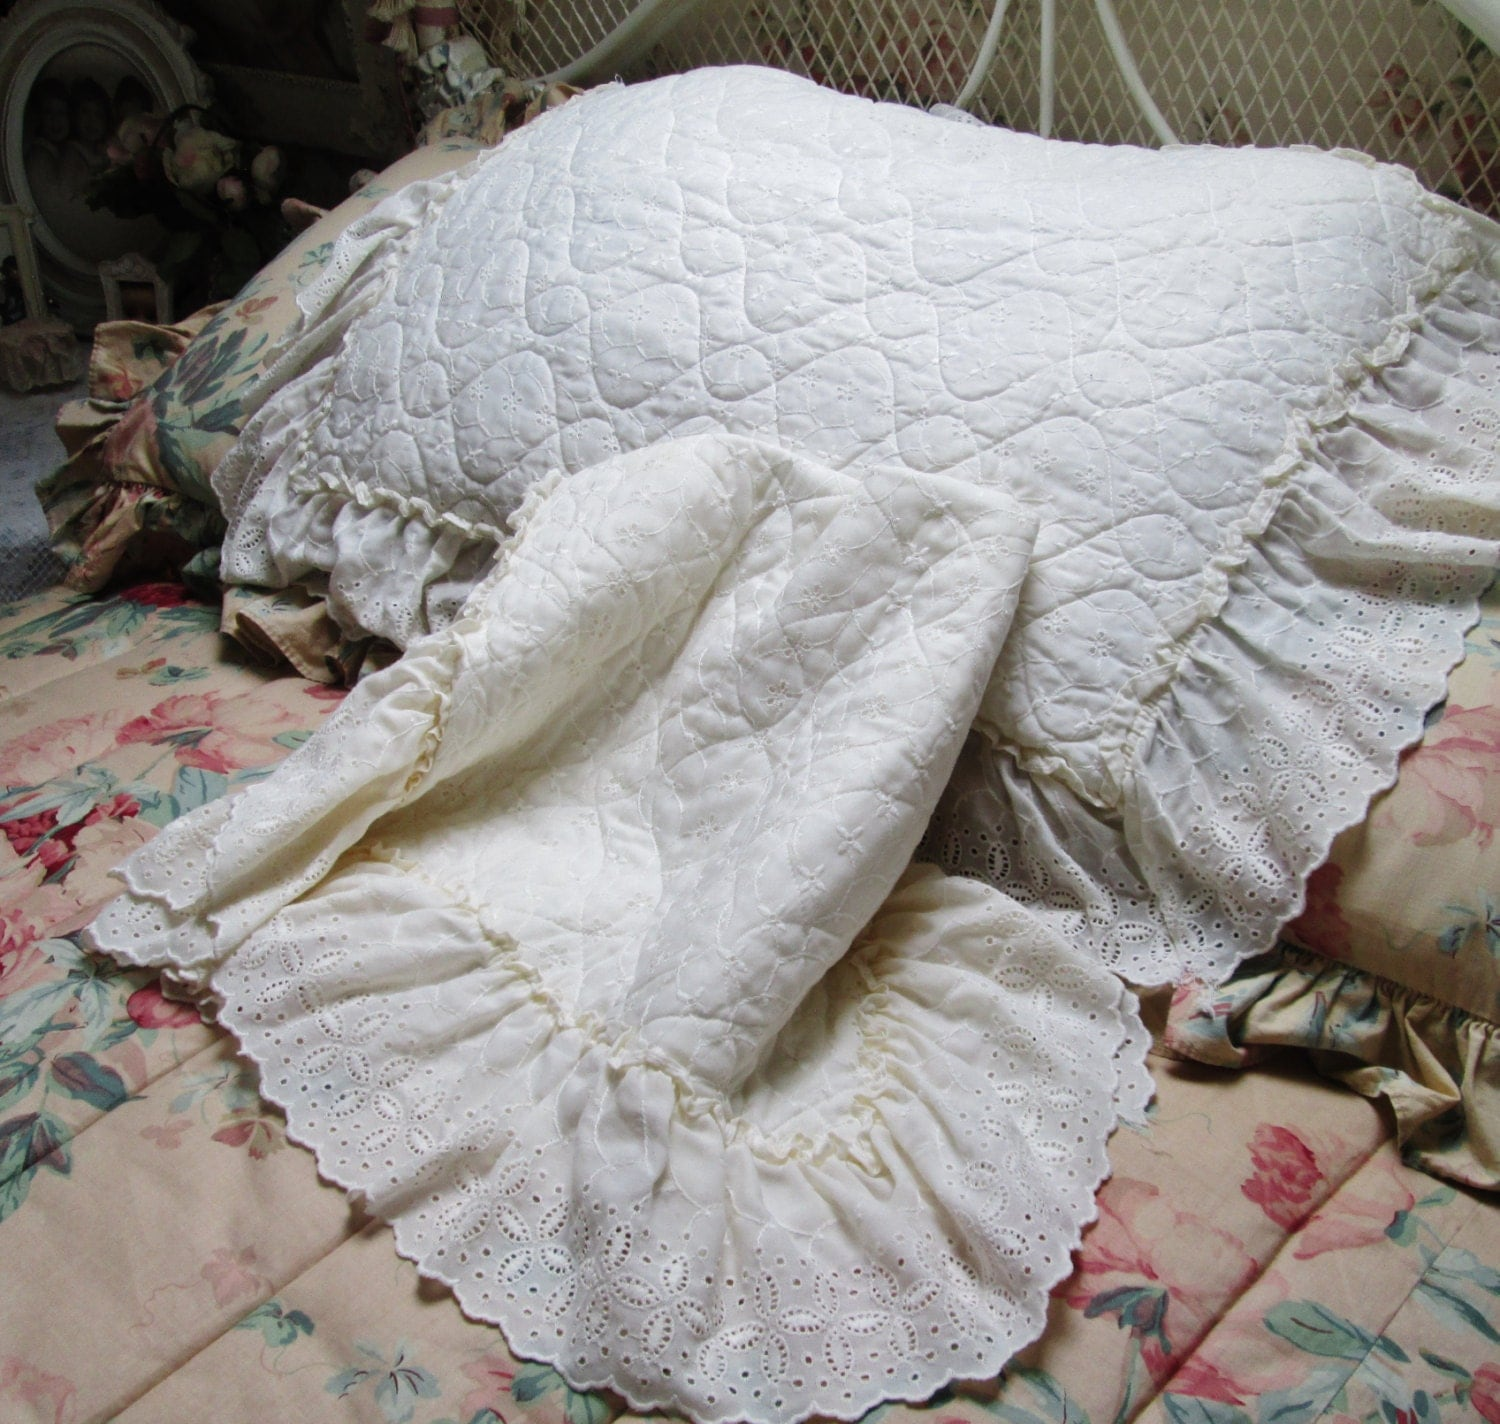 eyelet ruffled pillow shams shabby chic bedding by TheGirlyCottage